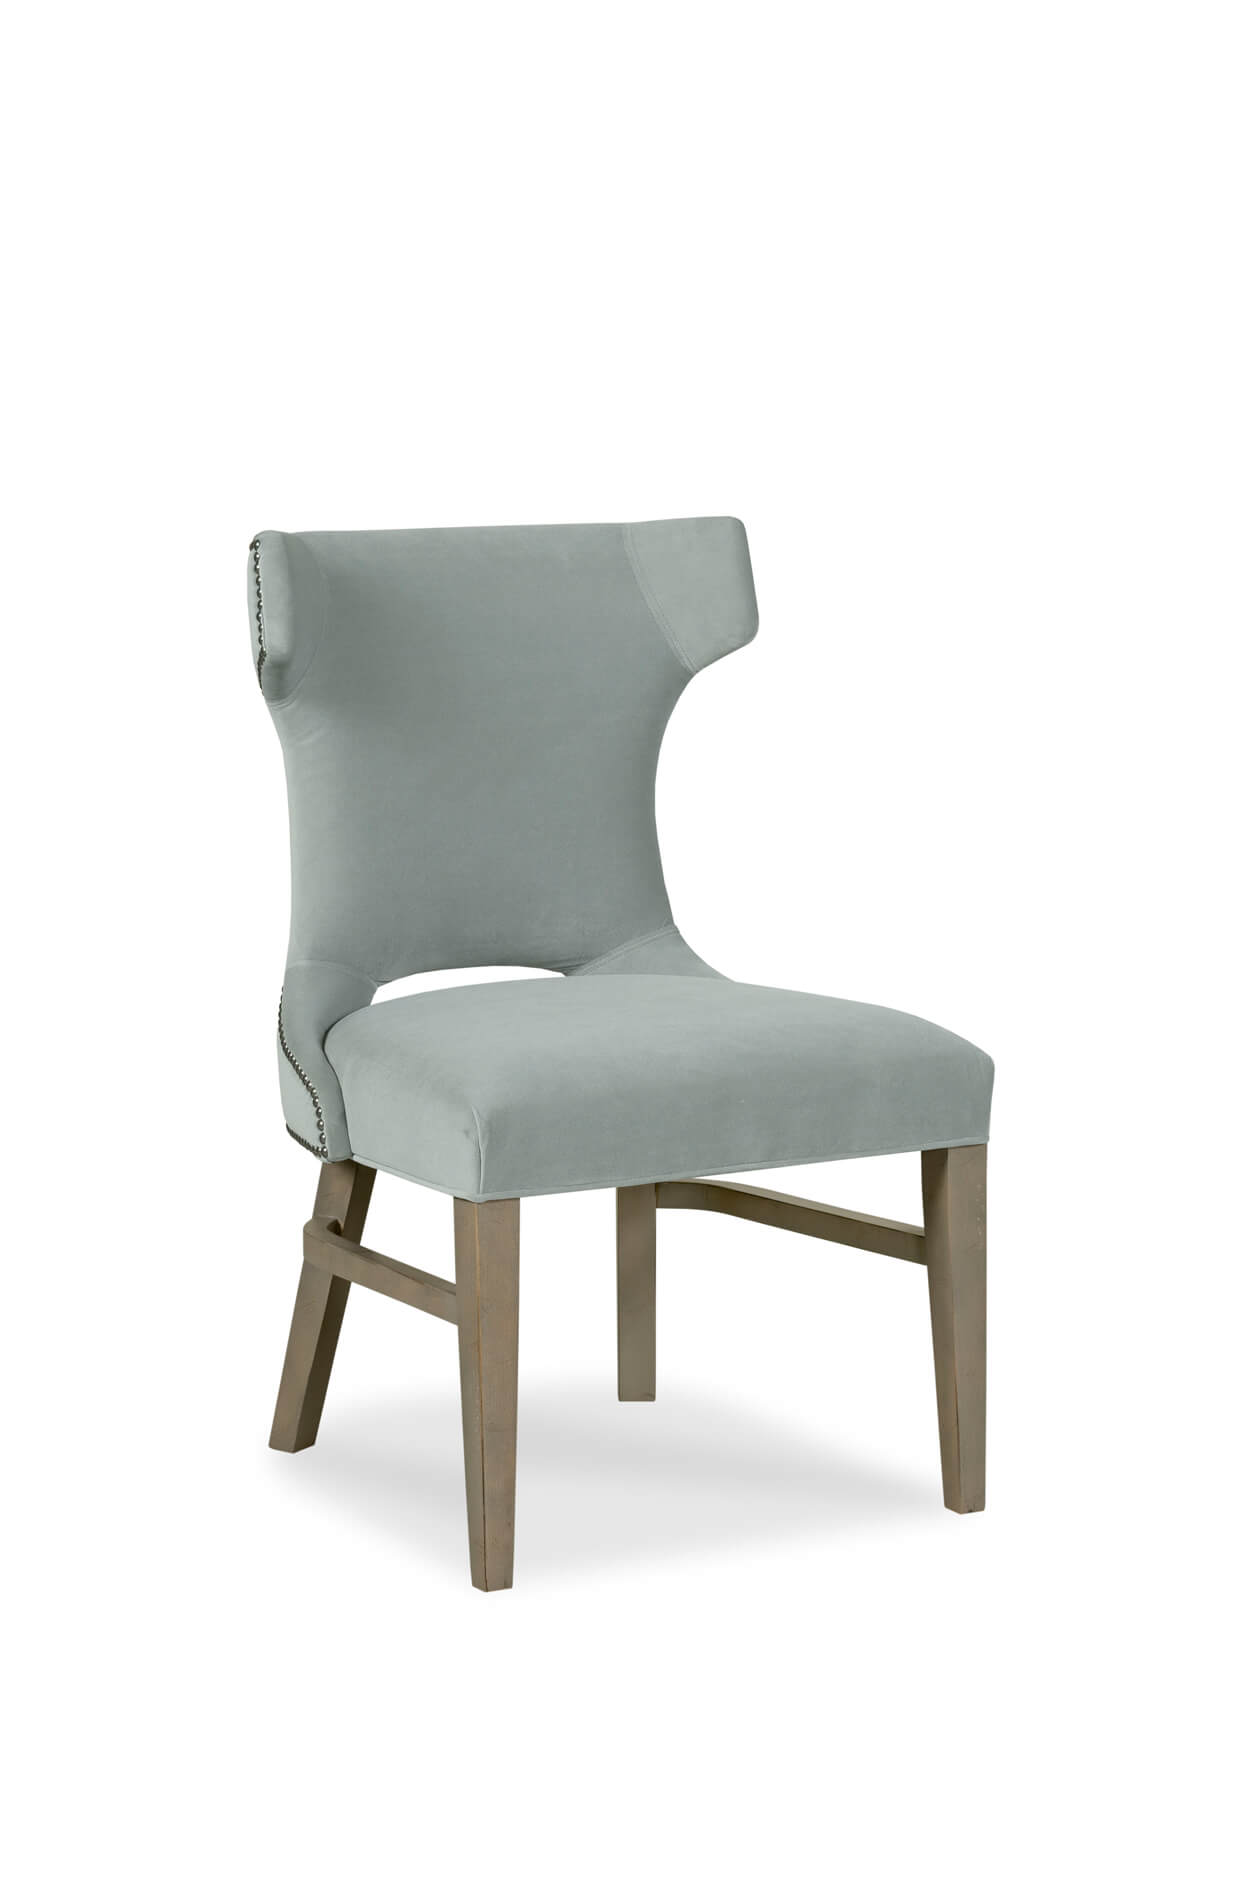 Fairfield's Gavin Upholstered Dining Chair